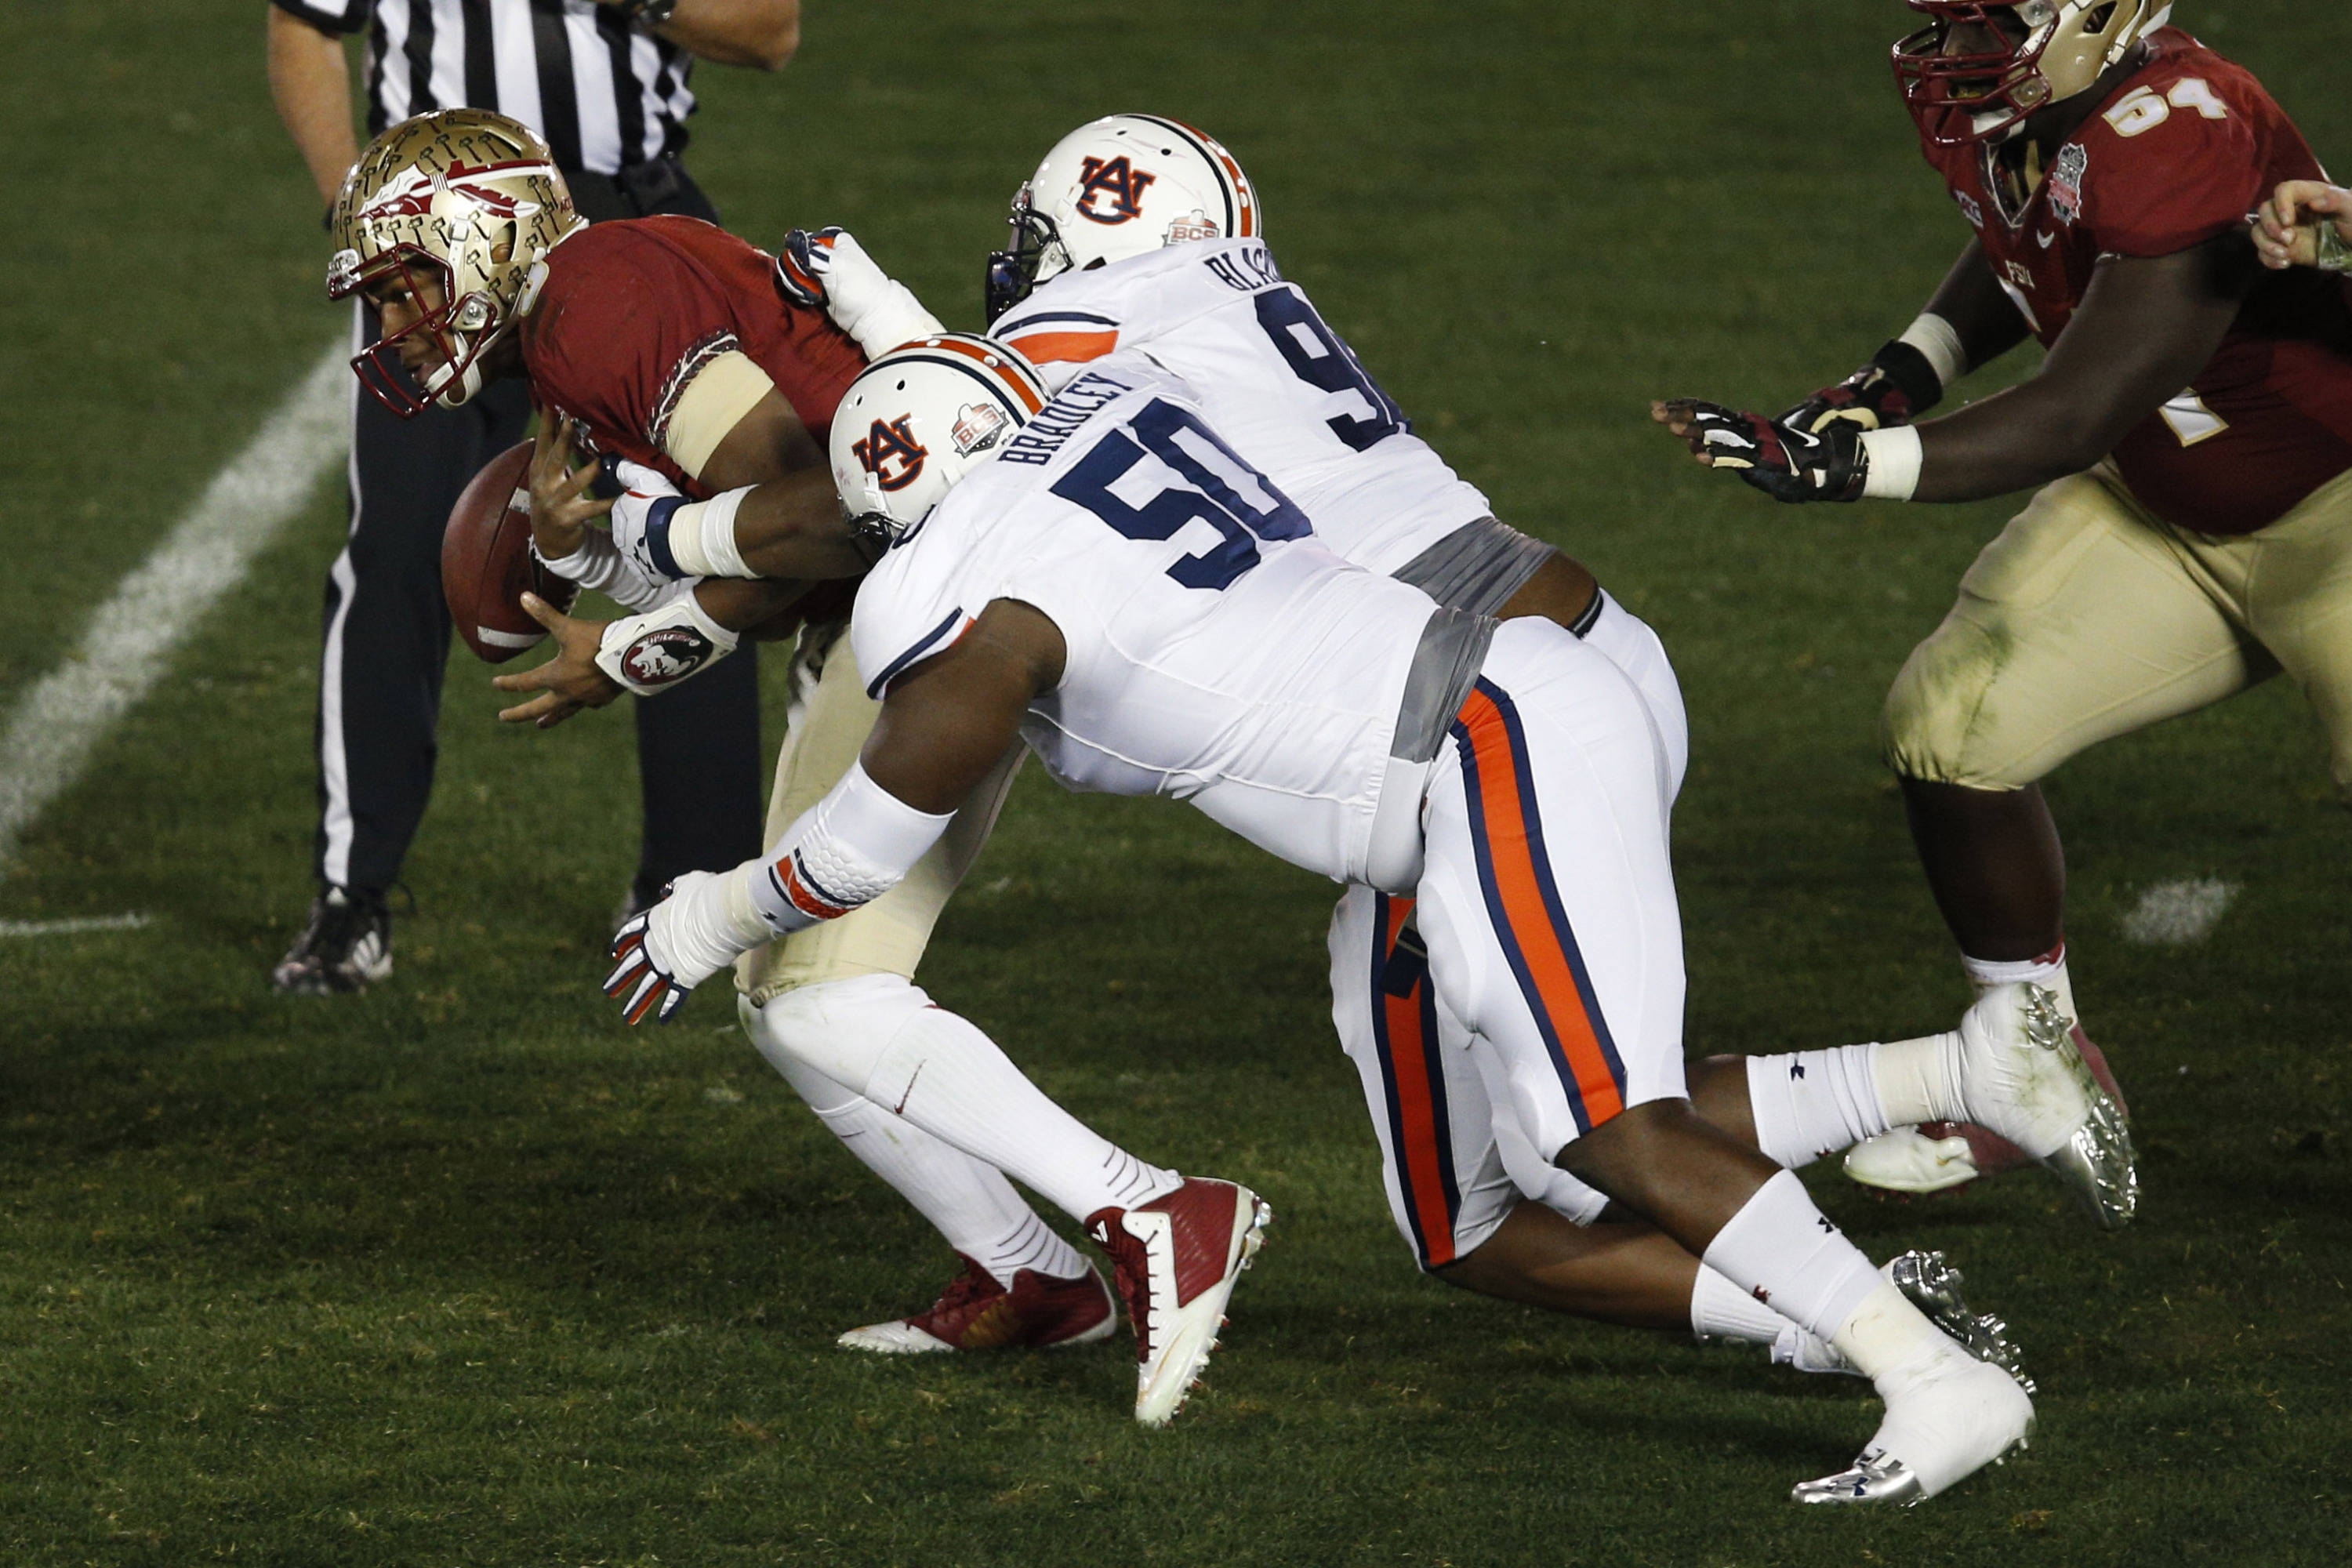 Jan 6, 2014; Pasadena, CA, USA; Auburn Tigers defensive tackle Ben Bradley (50) and defensive lineman Angelo Blackson (98) tackle Florida State Seminoles quarterback Jameis Winston (5) causing a fumble during the first half of the 2014 BCS National Championship game at the Rose Bowl.  Mandatory Credit: Kelvin Kuo-USA TODAY Sports